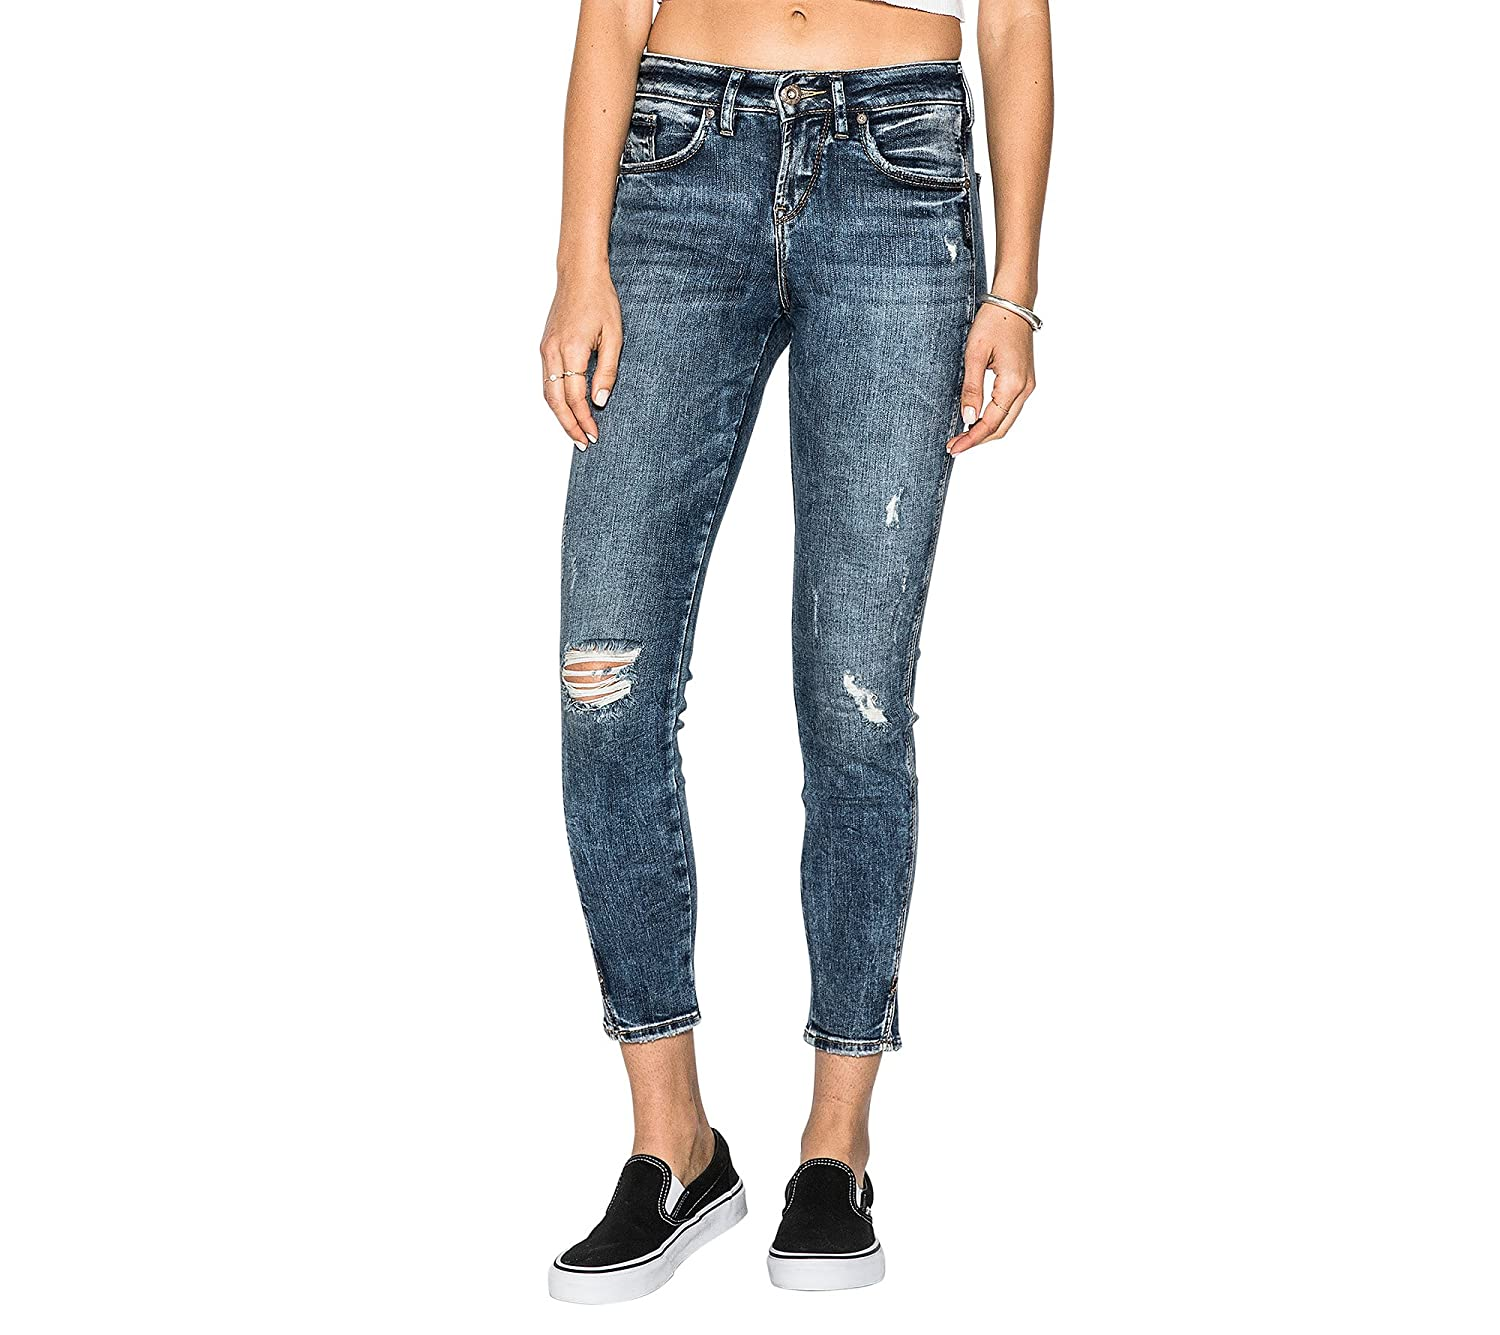 684e7cdddb4b Zipper closure. Machine Wash High-rise skinny jeans with a destroyed medium- dark acid wash. Curvy fit with a relaxed hip and thigh. Super stretch denim  with ...